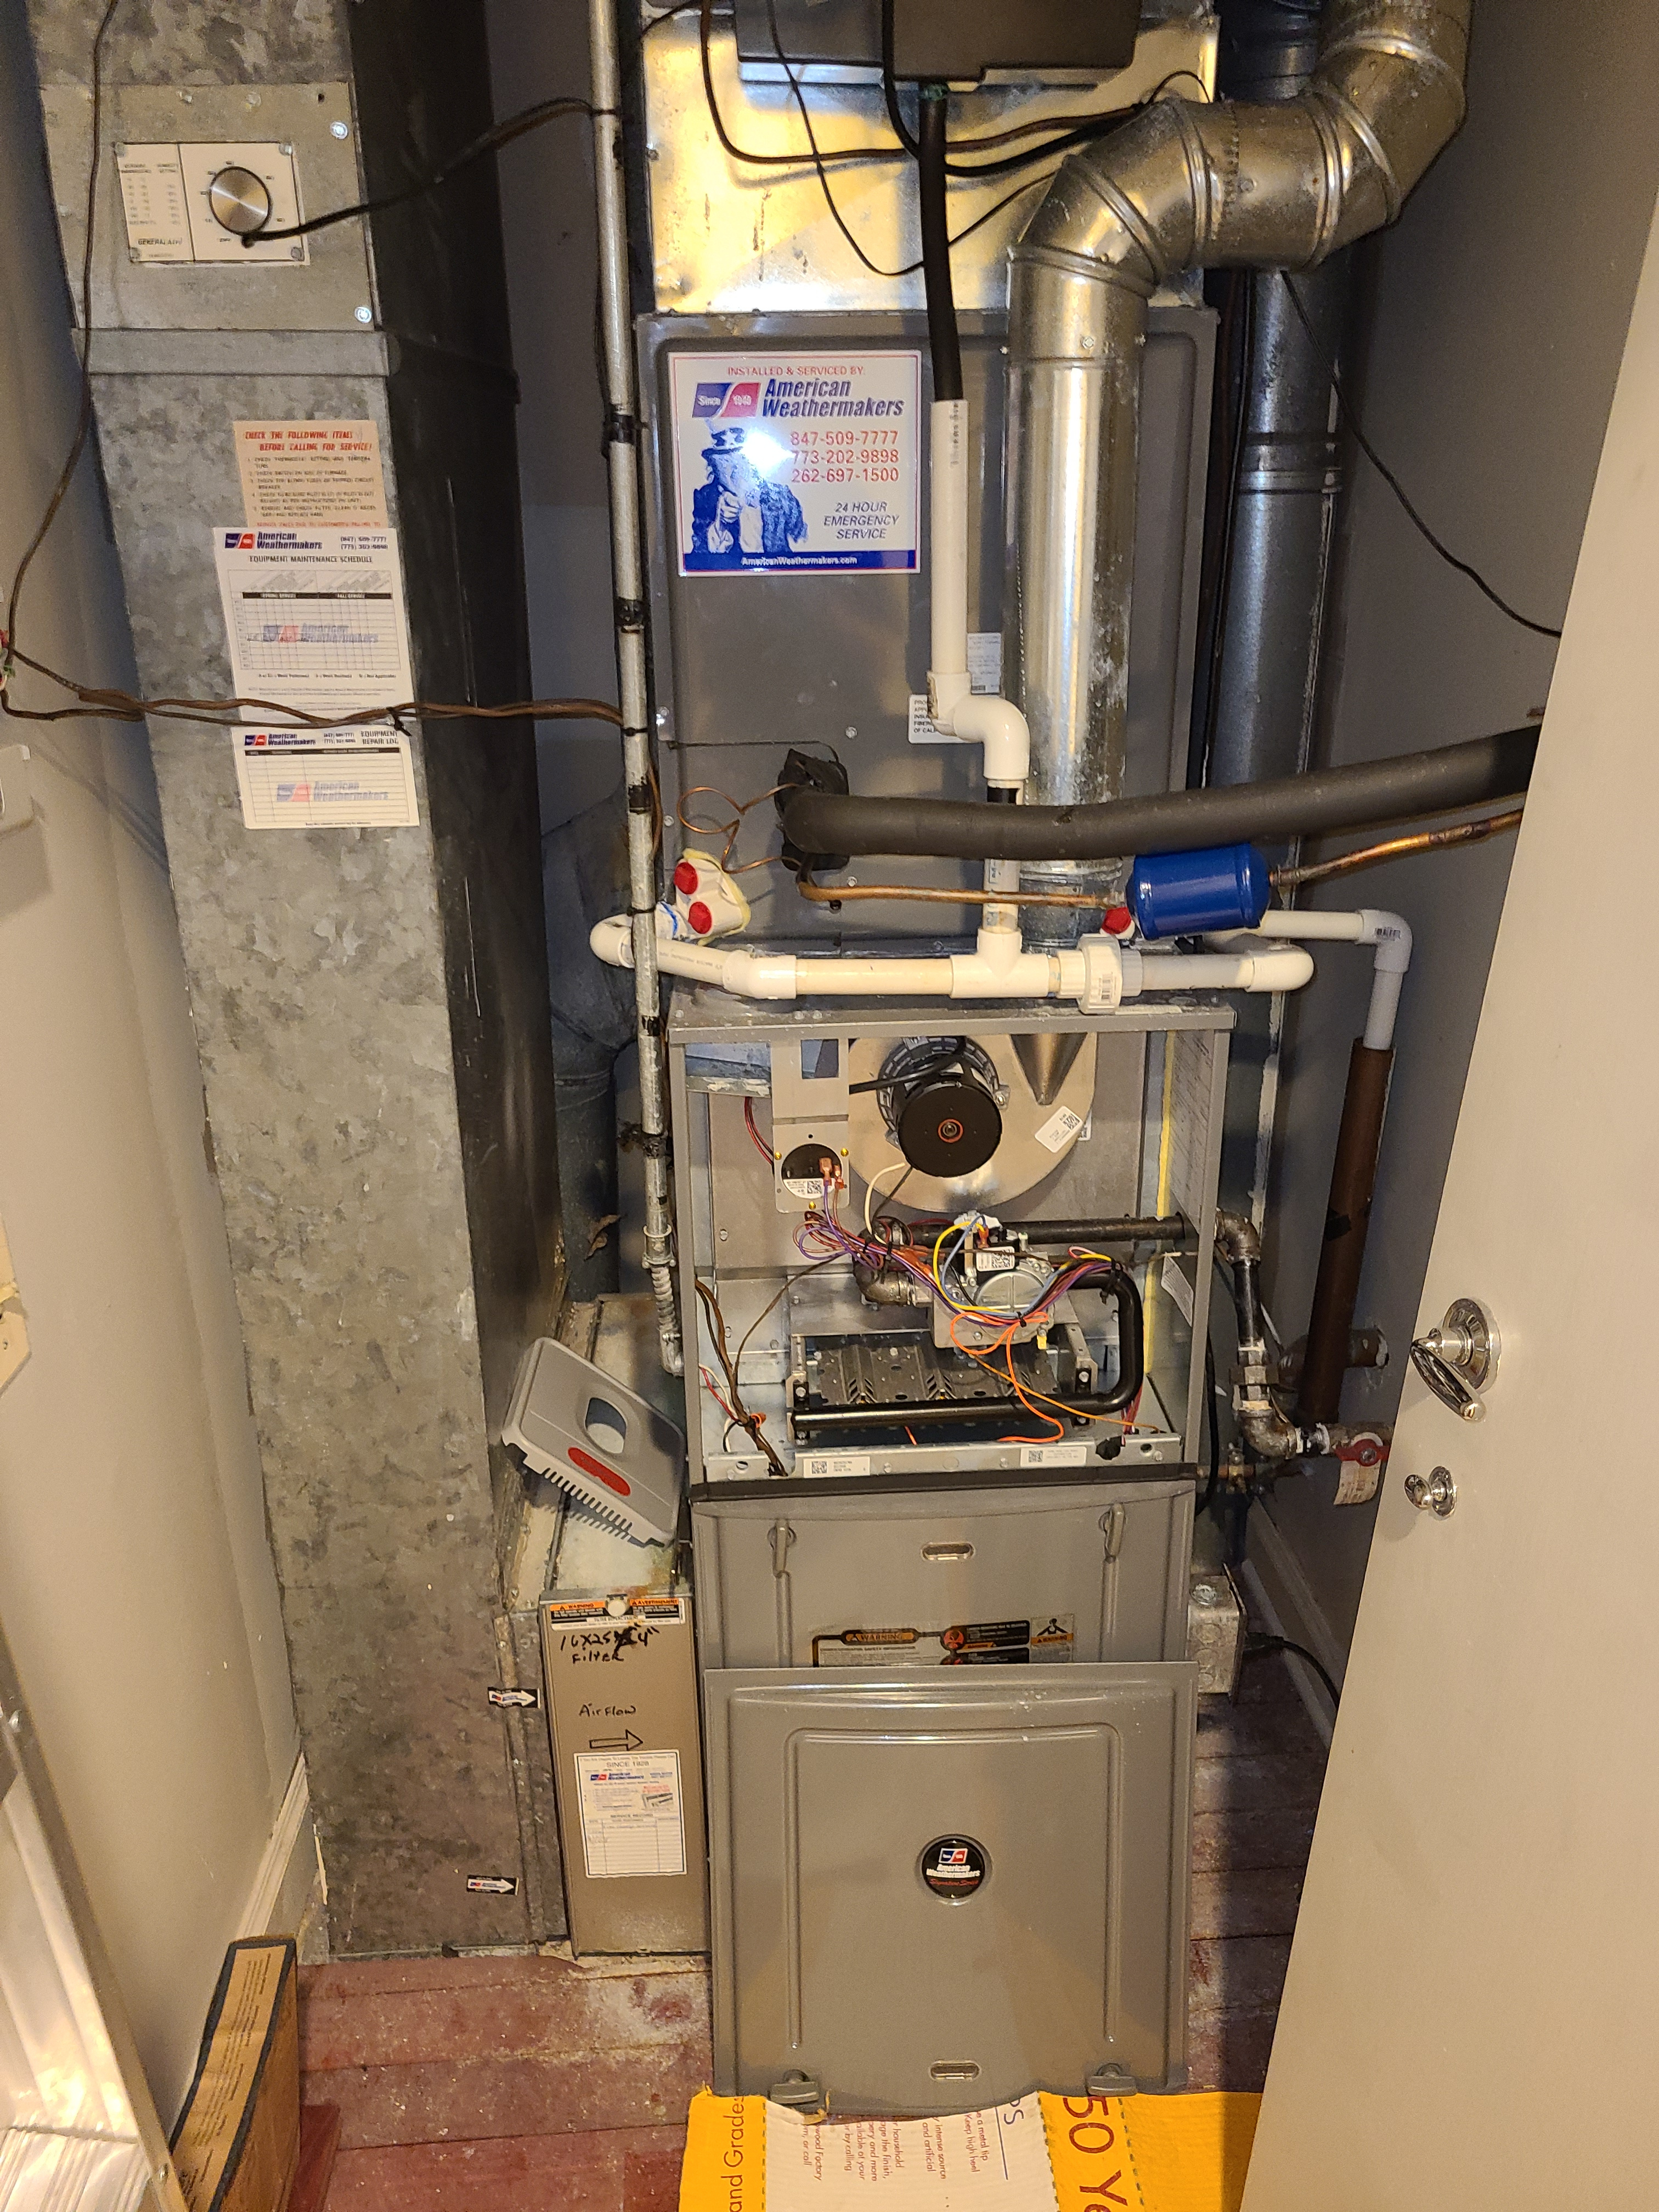 Ruud furnace, fall service. System cleaned and checked and ready for winter.